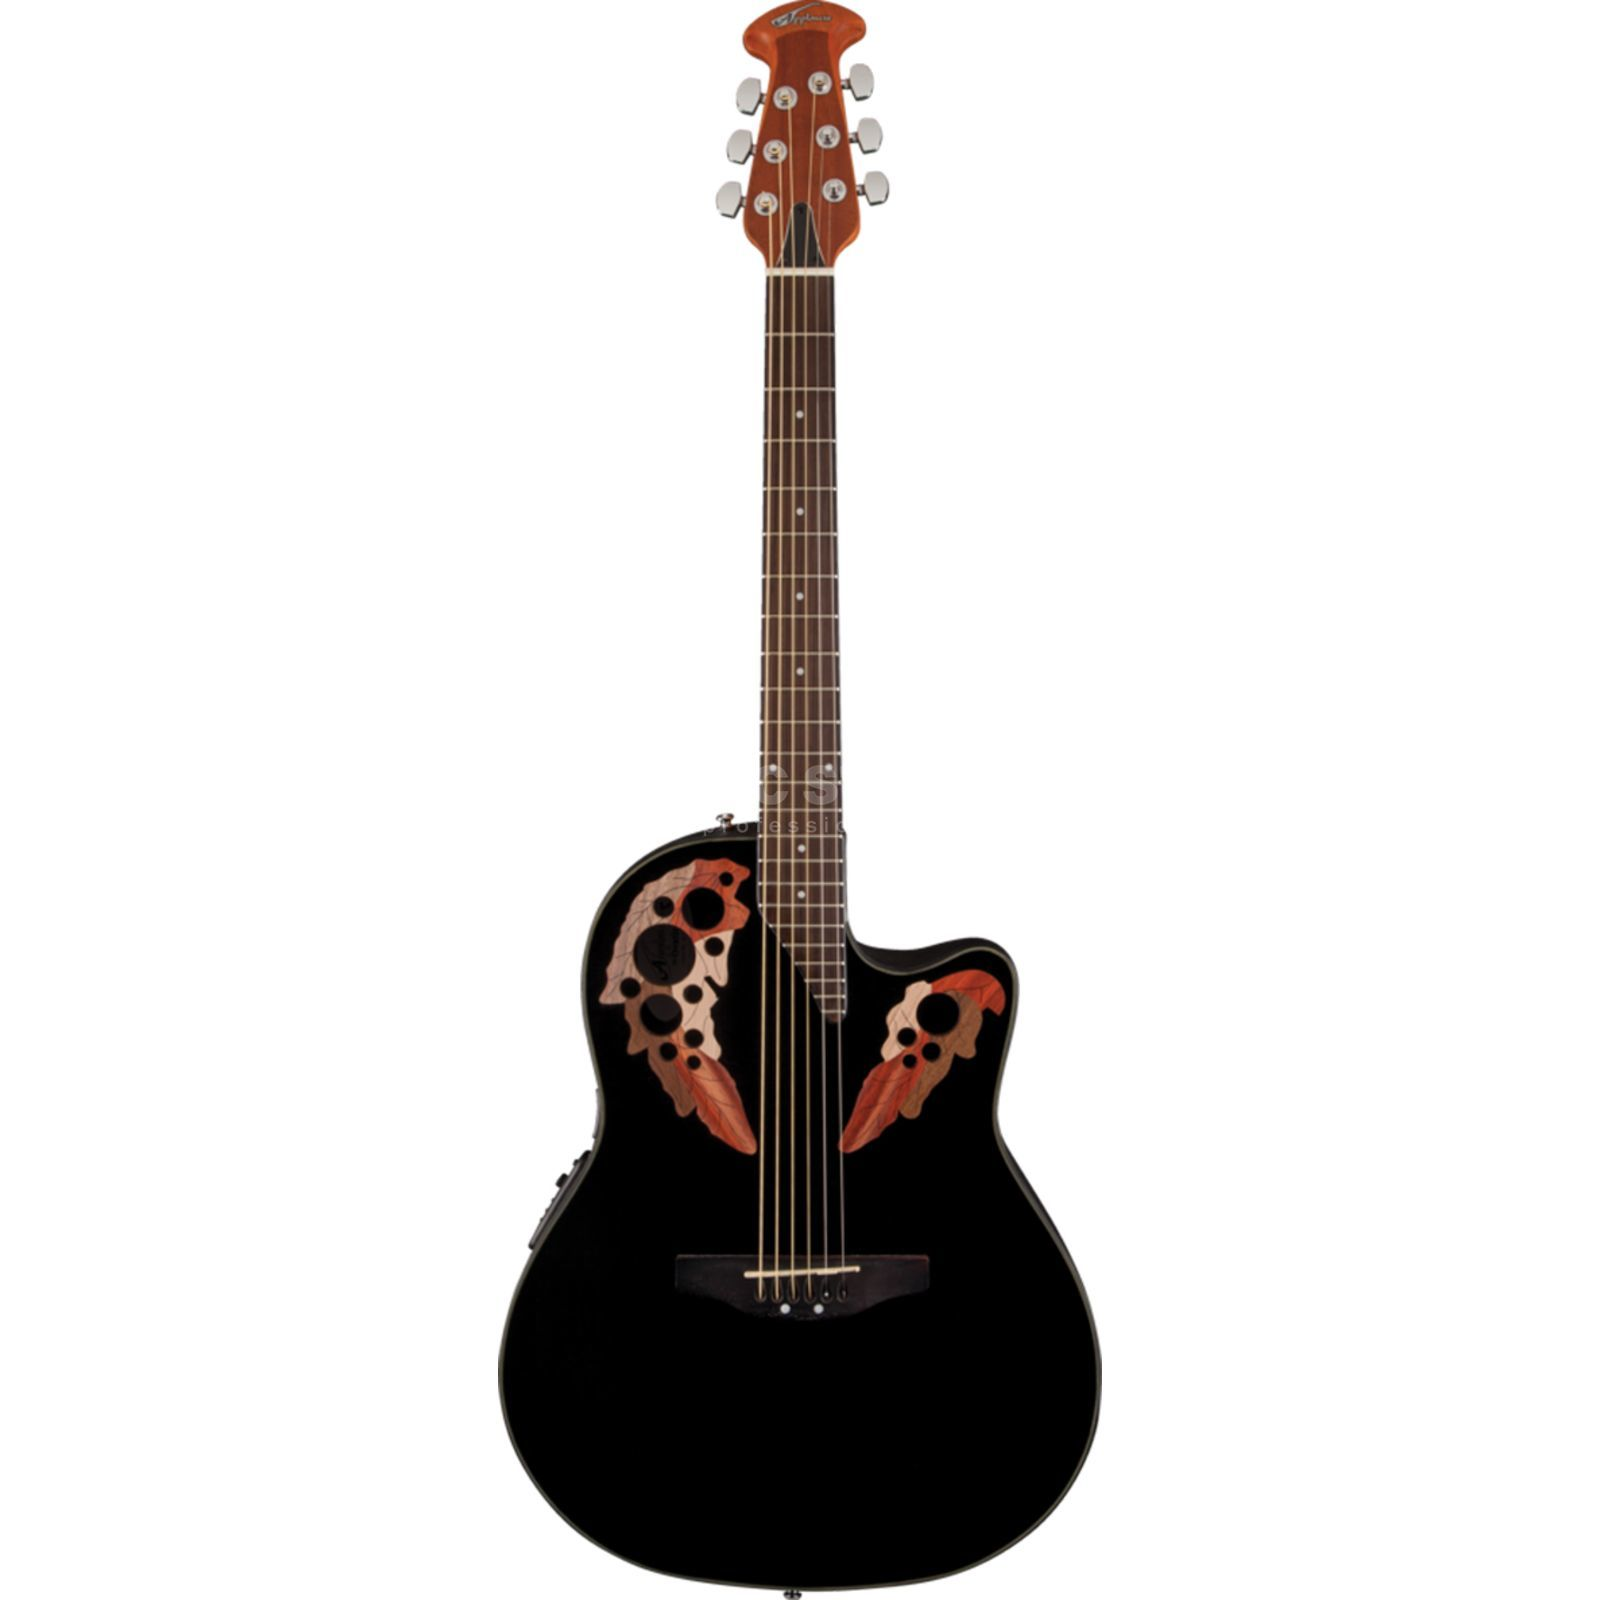 Ovation AE44-5 Applause Elite BK Black Produktbild